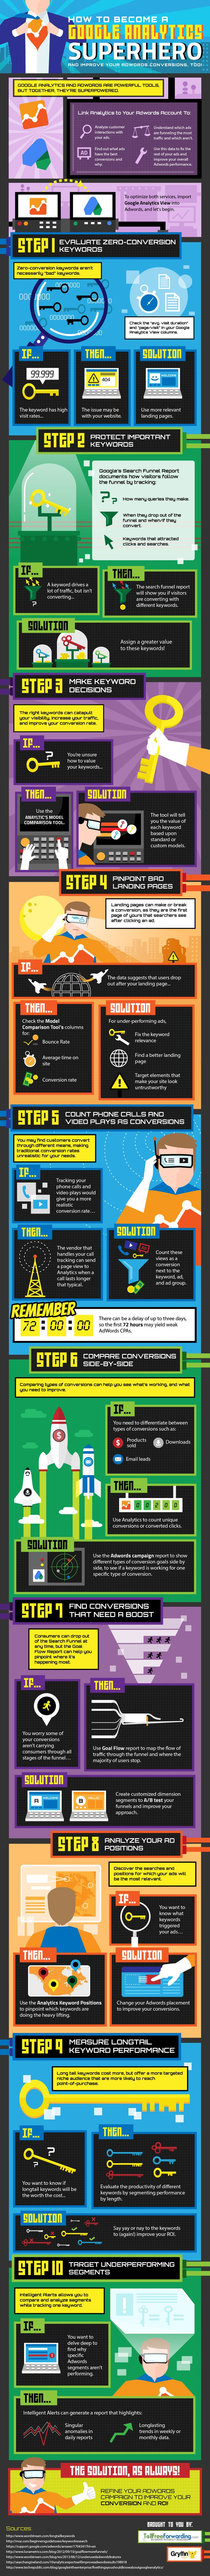 How To Become A #Google #Analytics Superhero and Improve Your #Adwords Conversion, Too #infographic